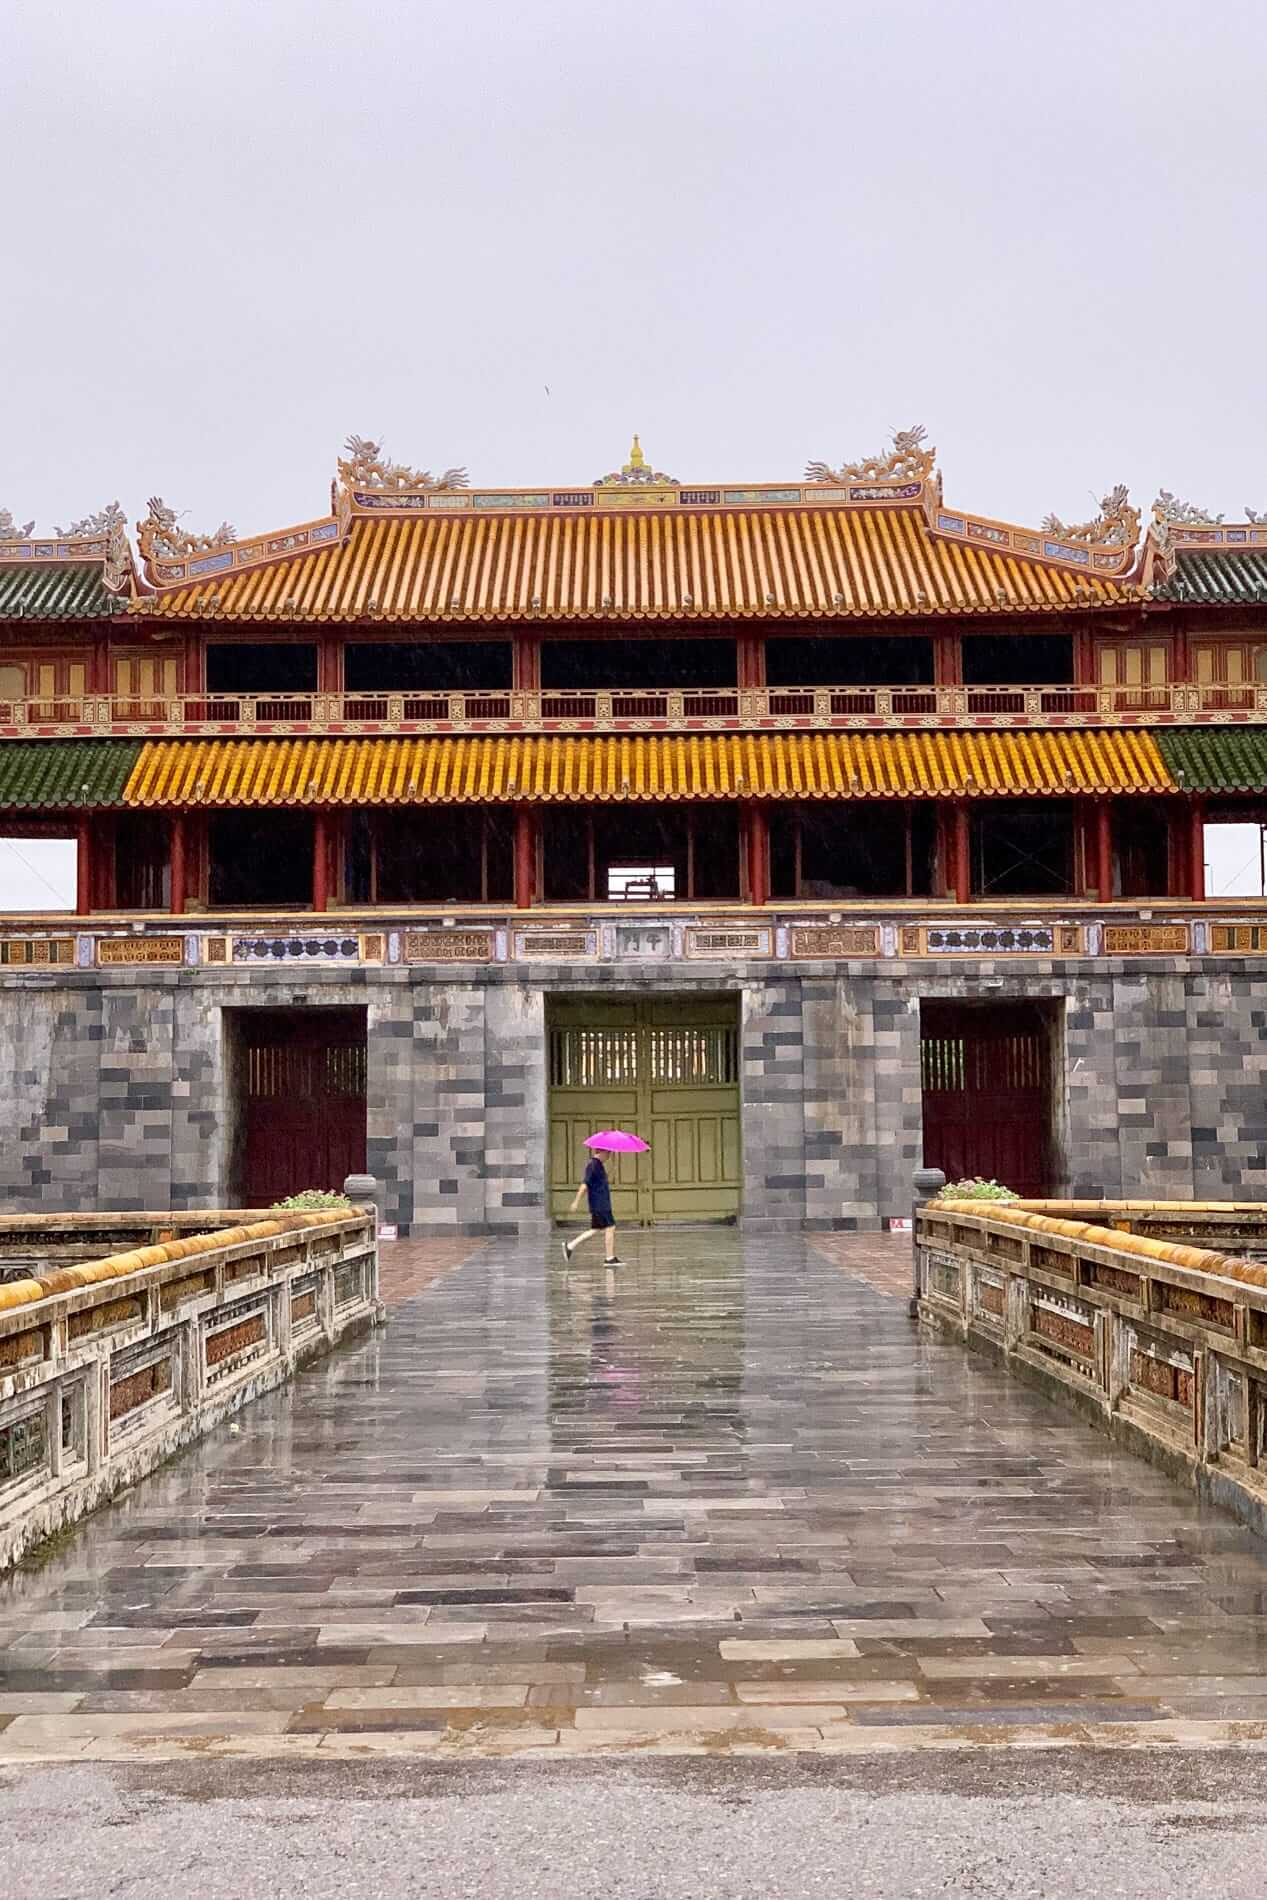 A rainy day at the Hue Citadel